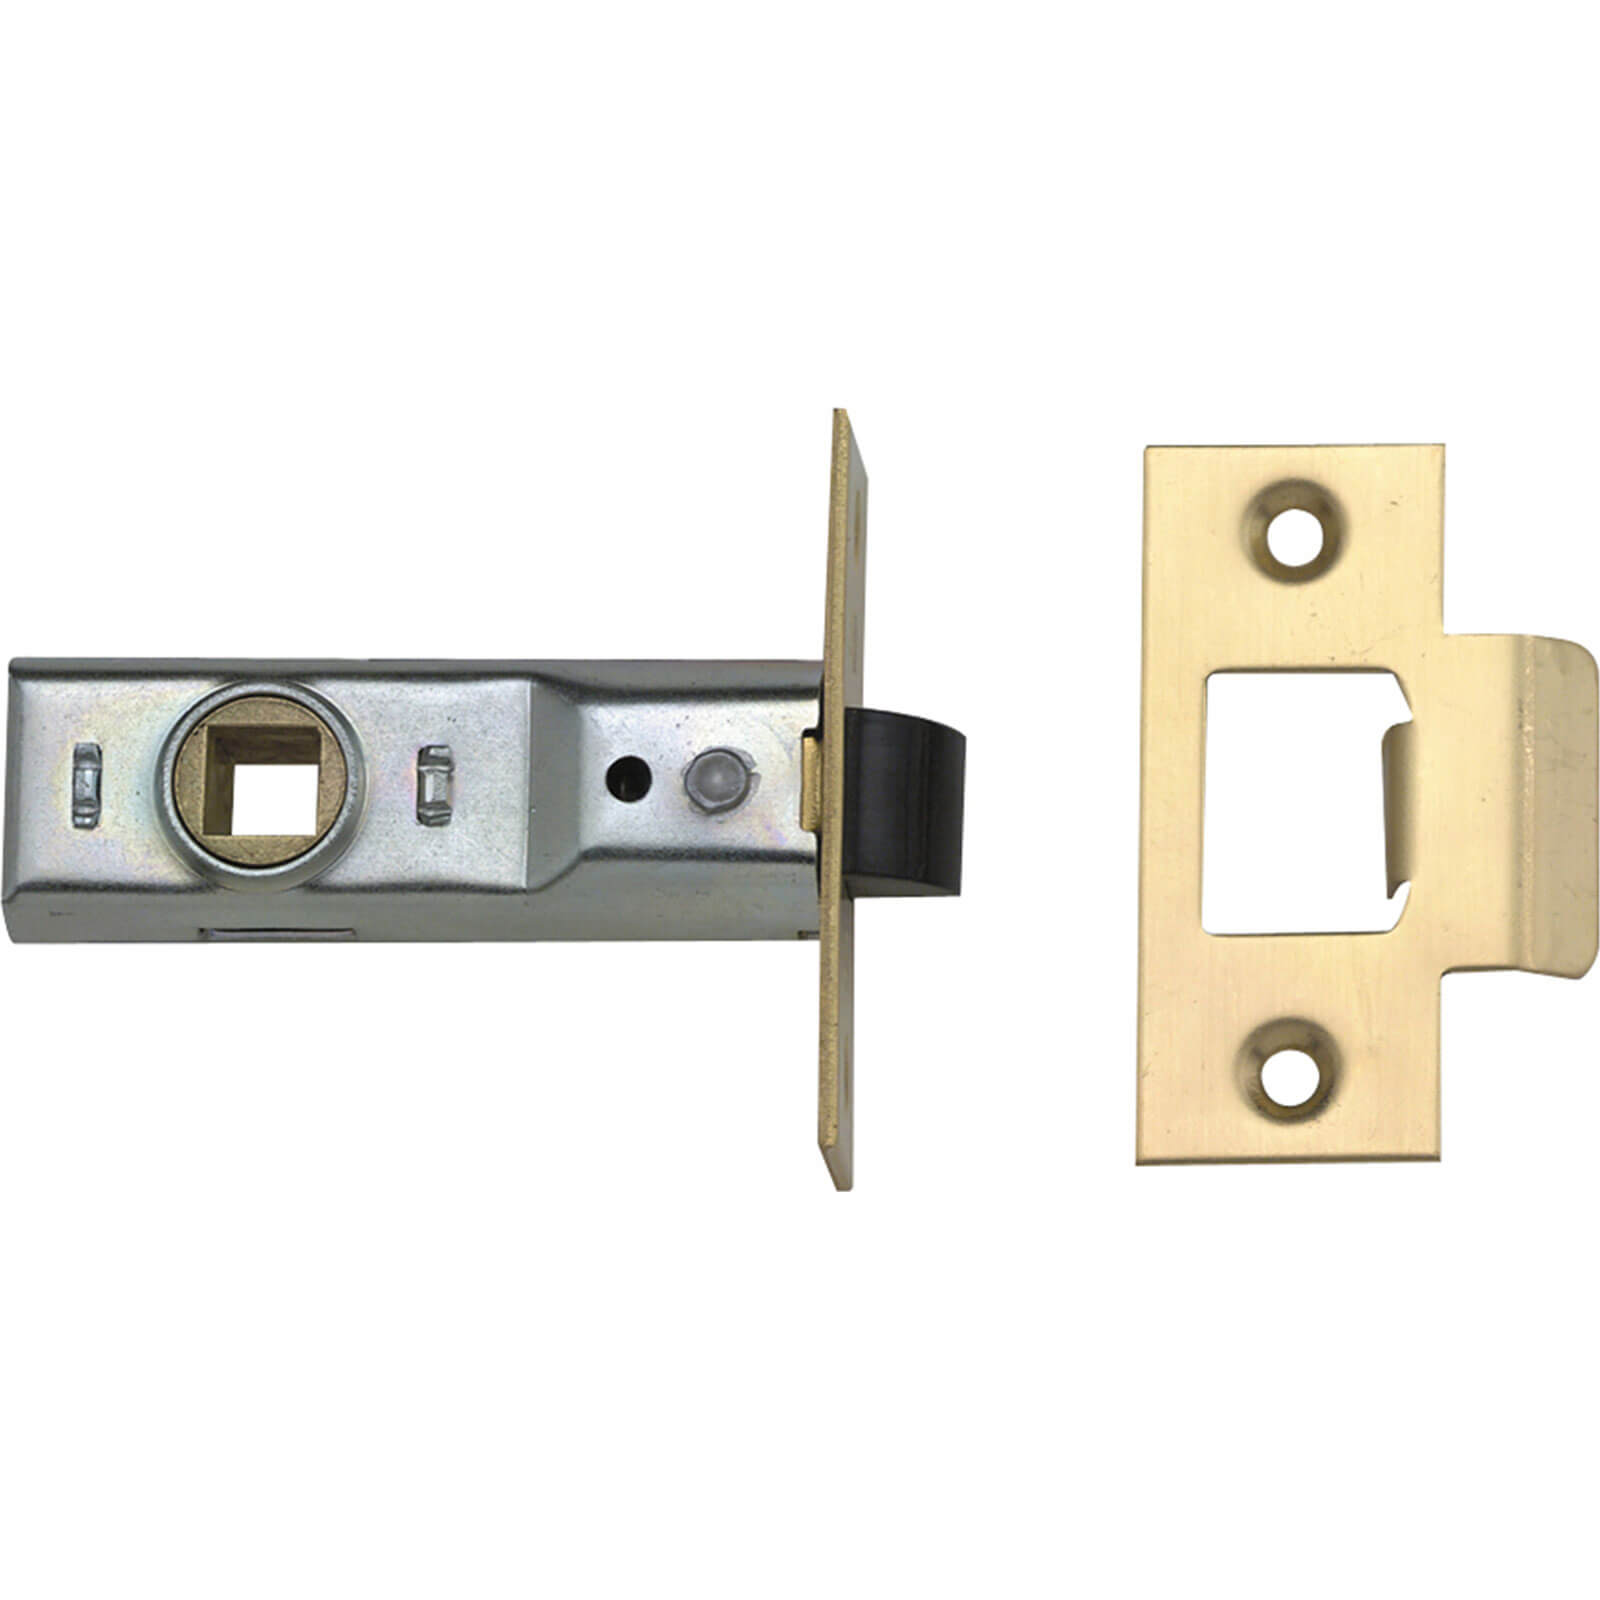 "Tooled Up/Ironmongery & Security/Ironmongery/Yale Locks M888 Rebated Mortice Latch 64mm / 2.5"" Polished Brass of 1"